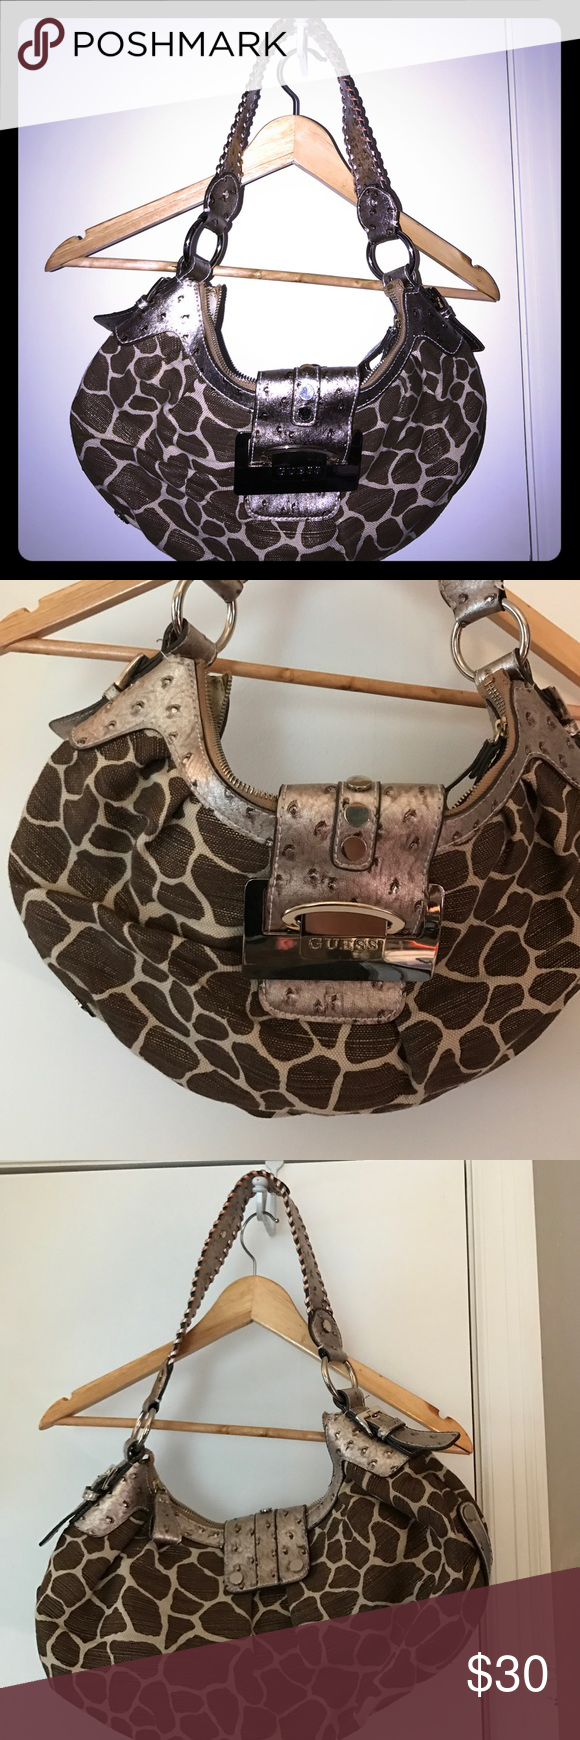 "Giraffe print purse Great condition giraffe print purse. This was one of my favorites and it's almost 20 years old. The leather has gotten lighter on the handle and that's it. 14"" handle drop. 14"" by 7"" Guess Bags Shoulder Bags"